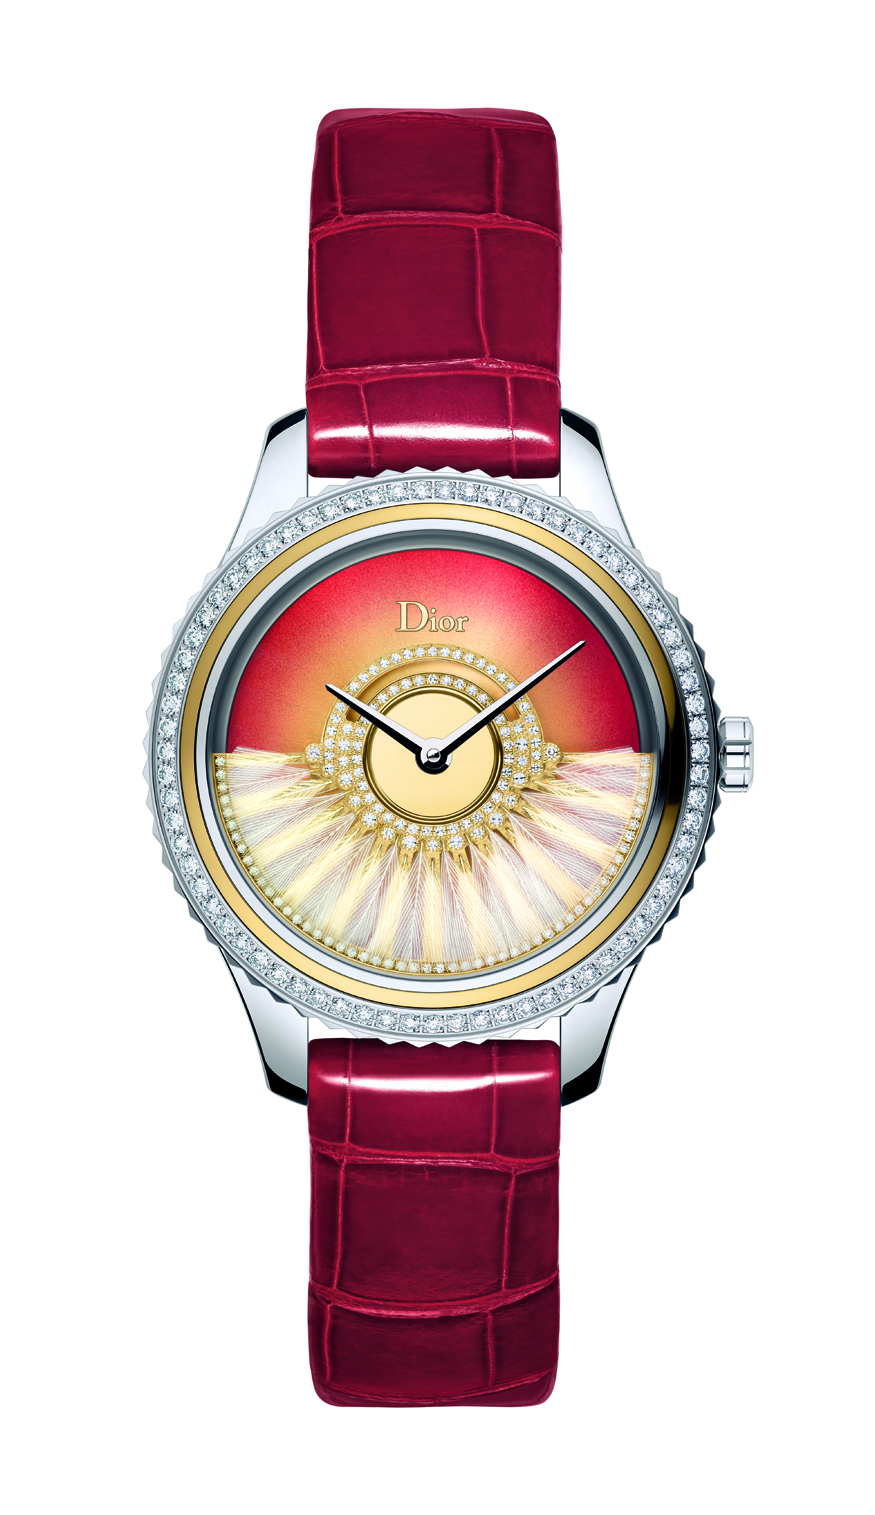 Dior's Limited Edition VIII Grand Bal Plume Watch for Chinese New Year